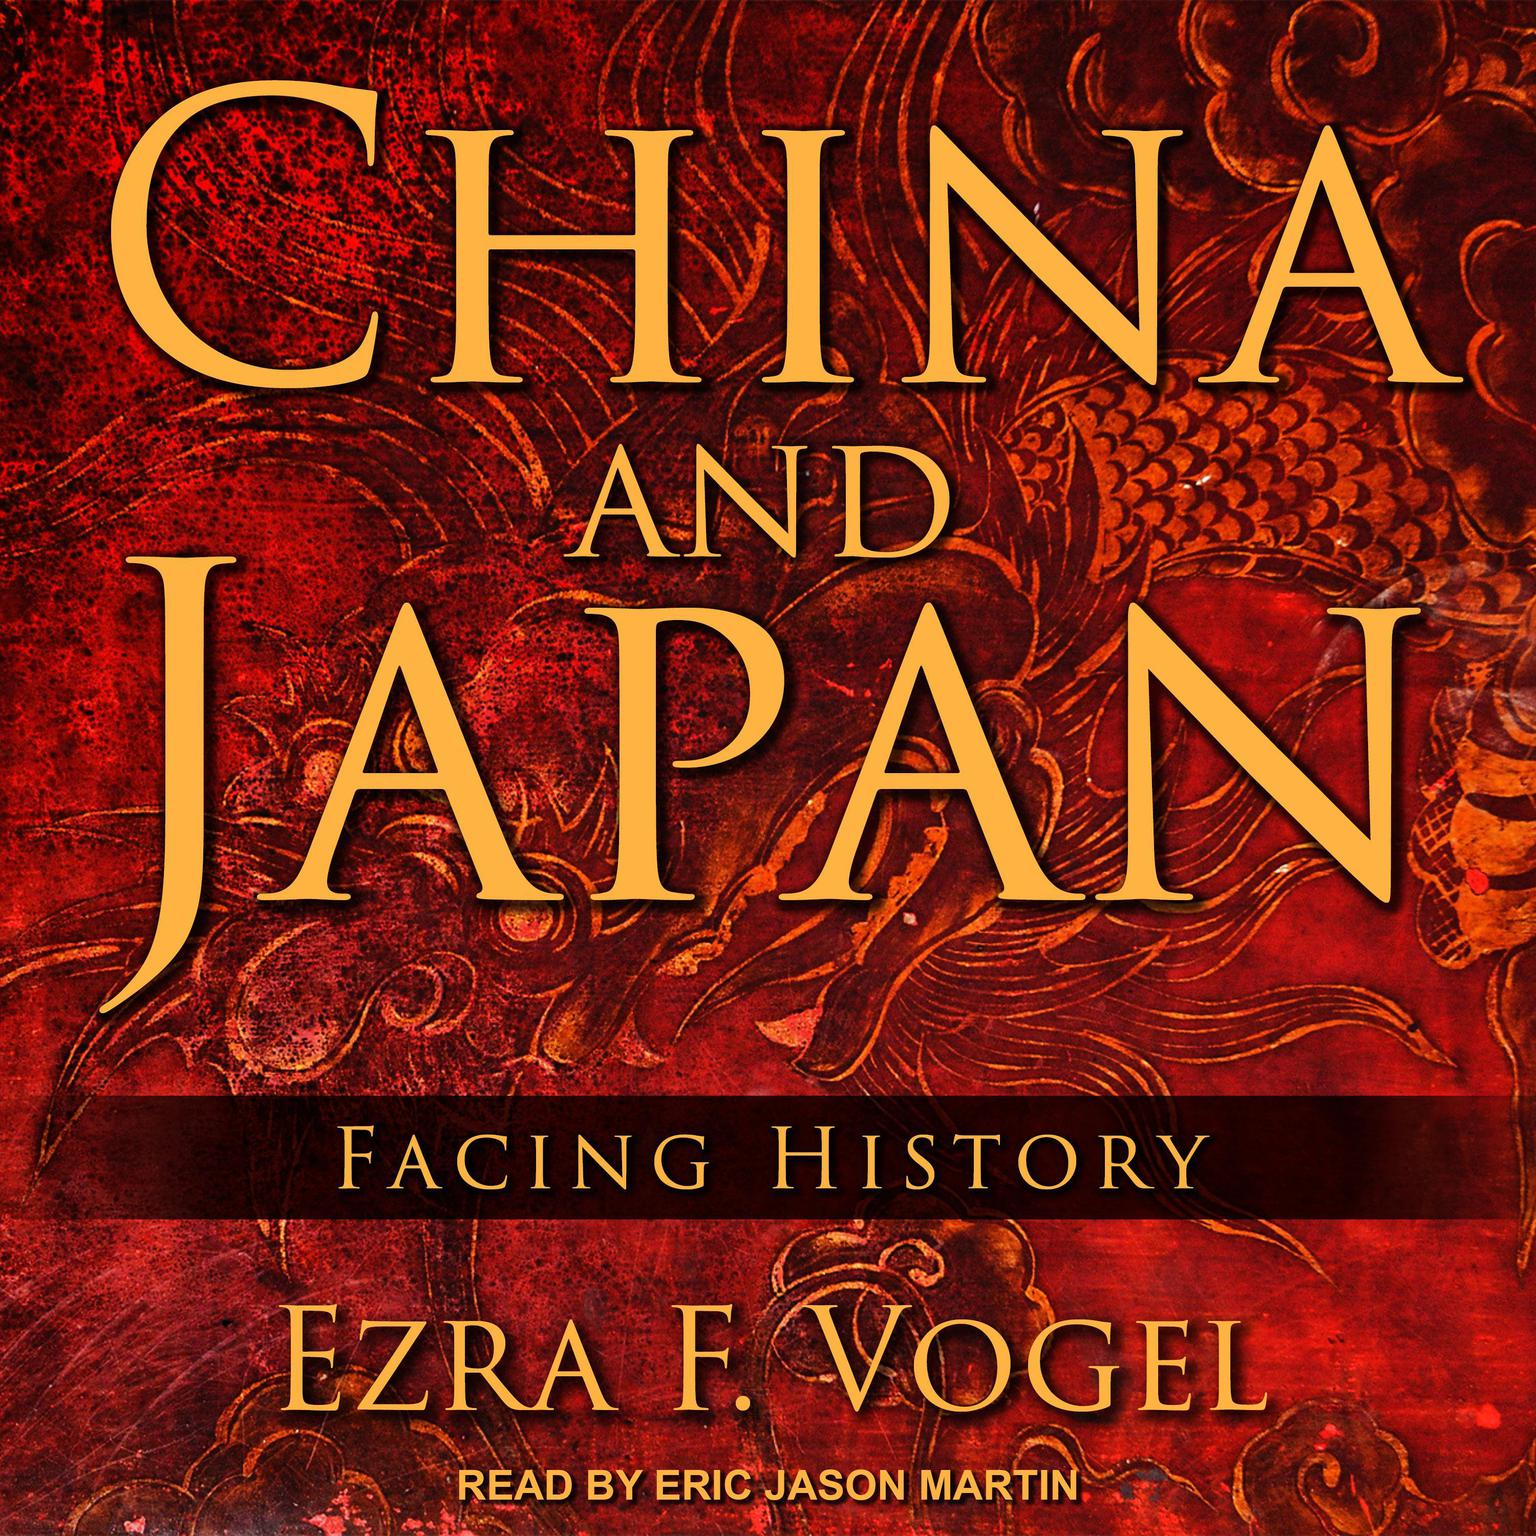 China and Japan: Facing History Audiobook, by Ezra F. Vogel